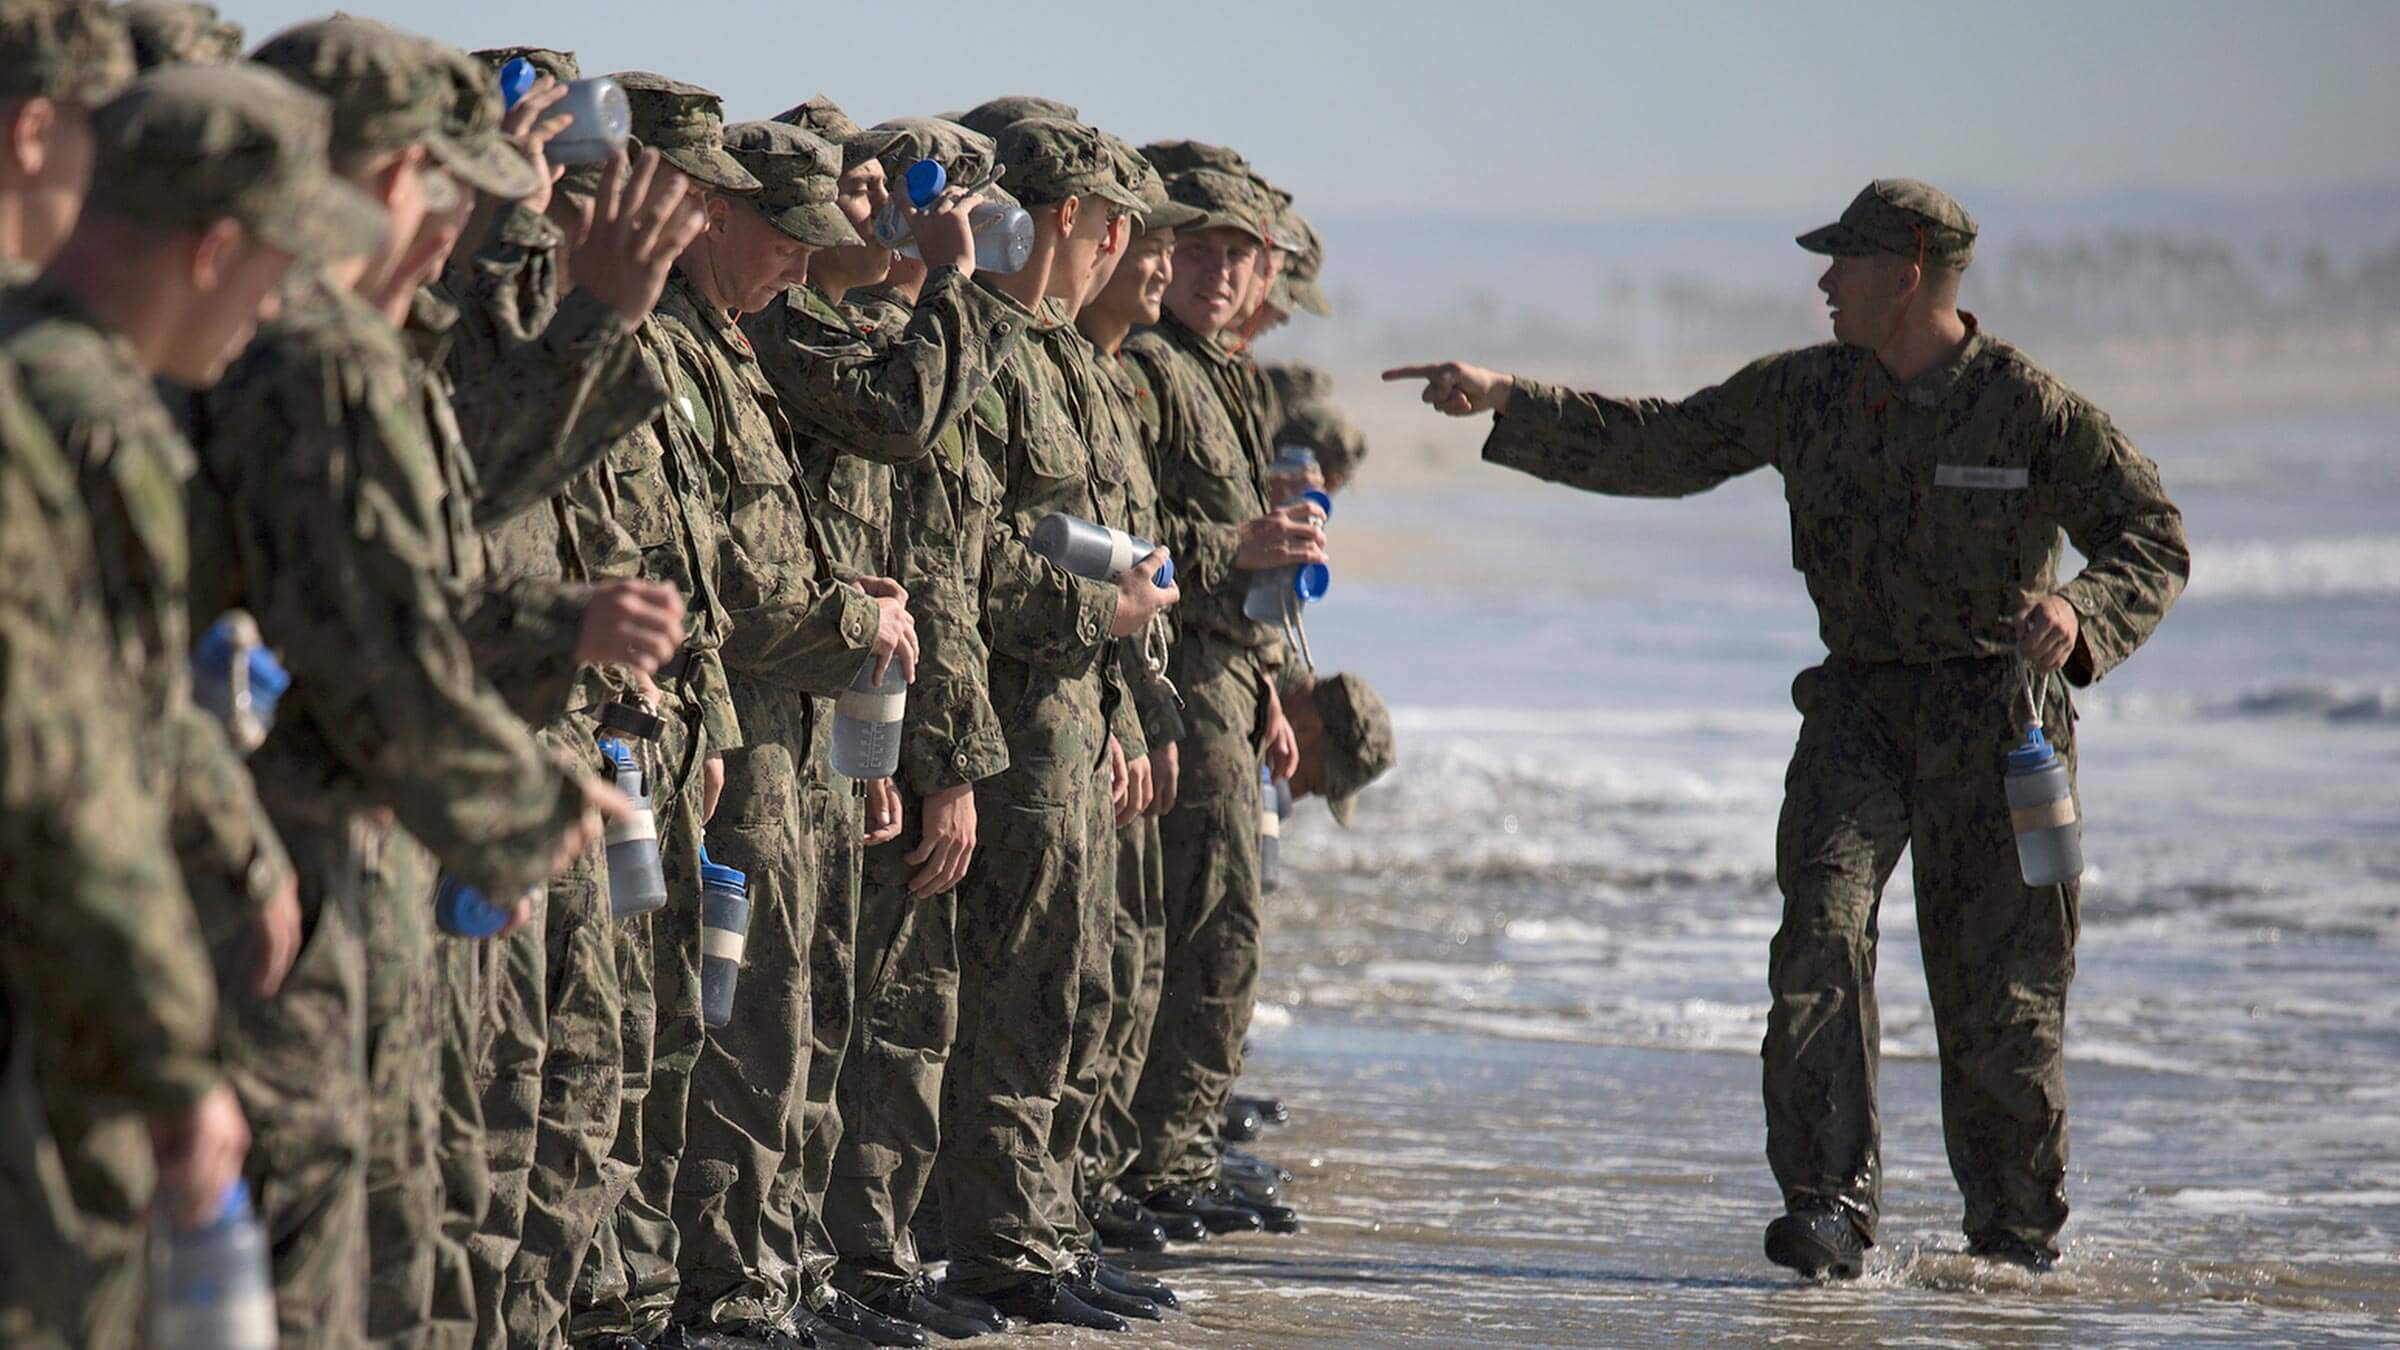 Navy SEAL candidates in training